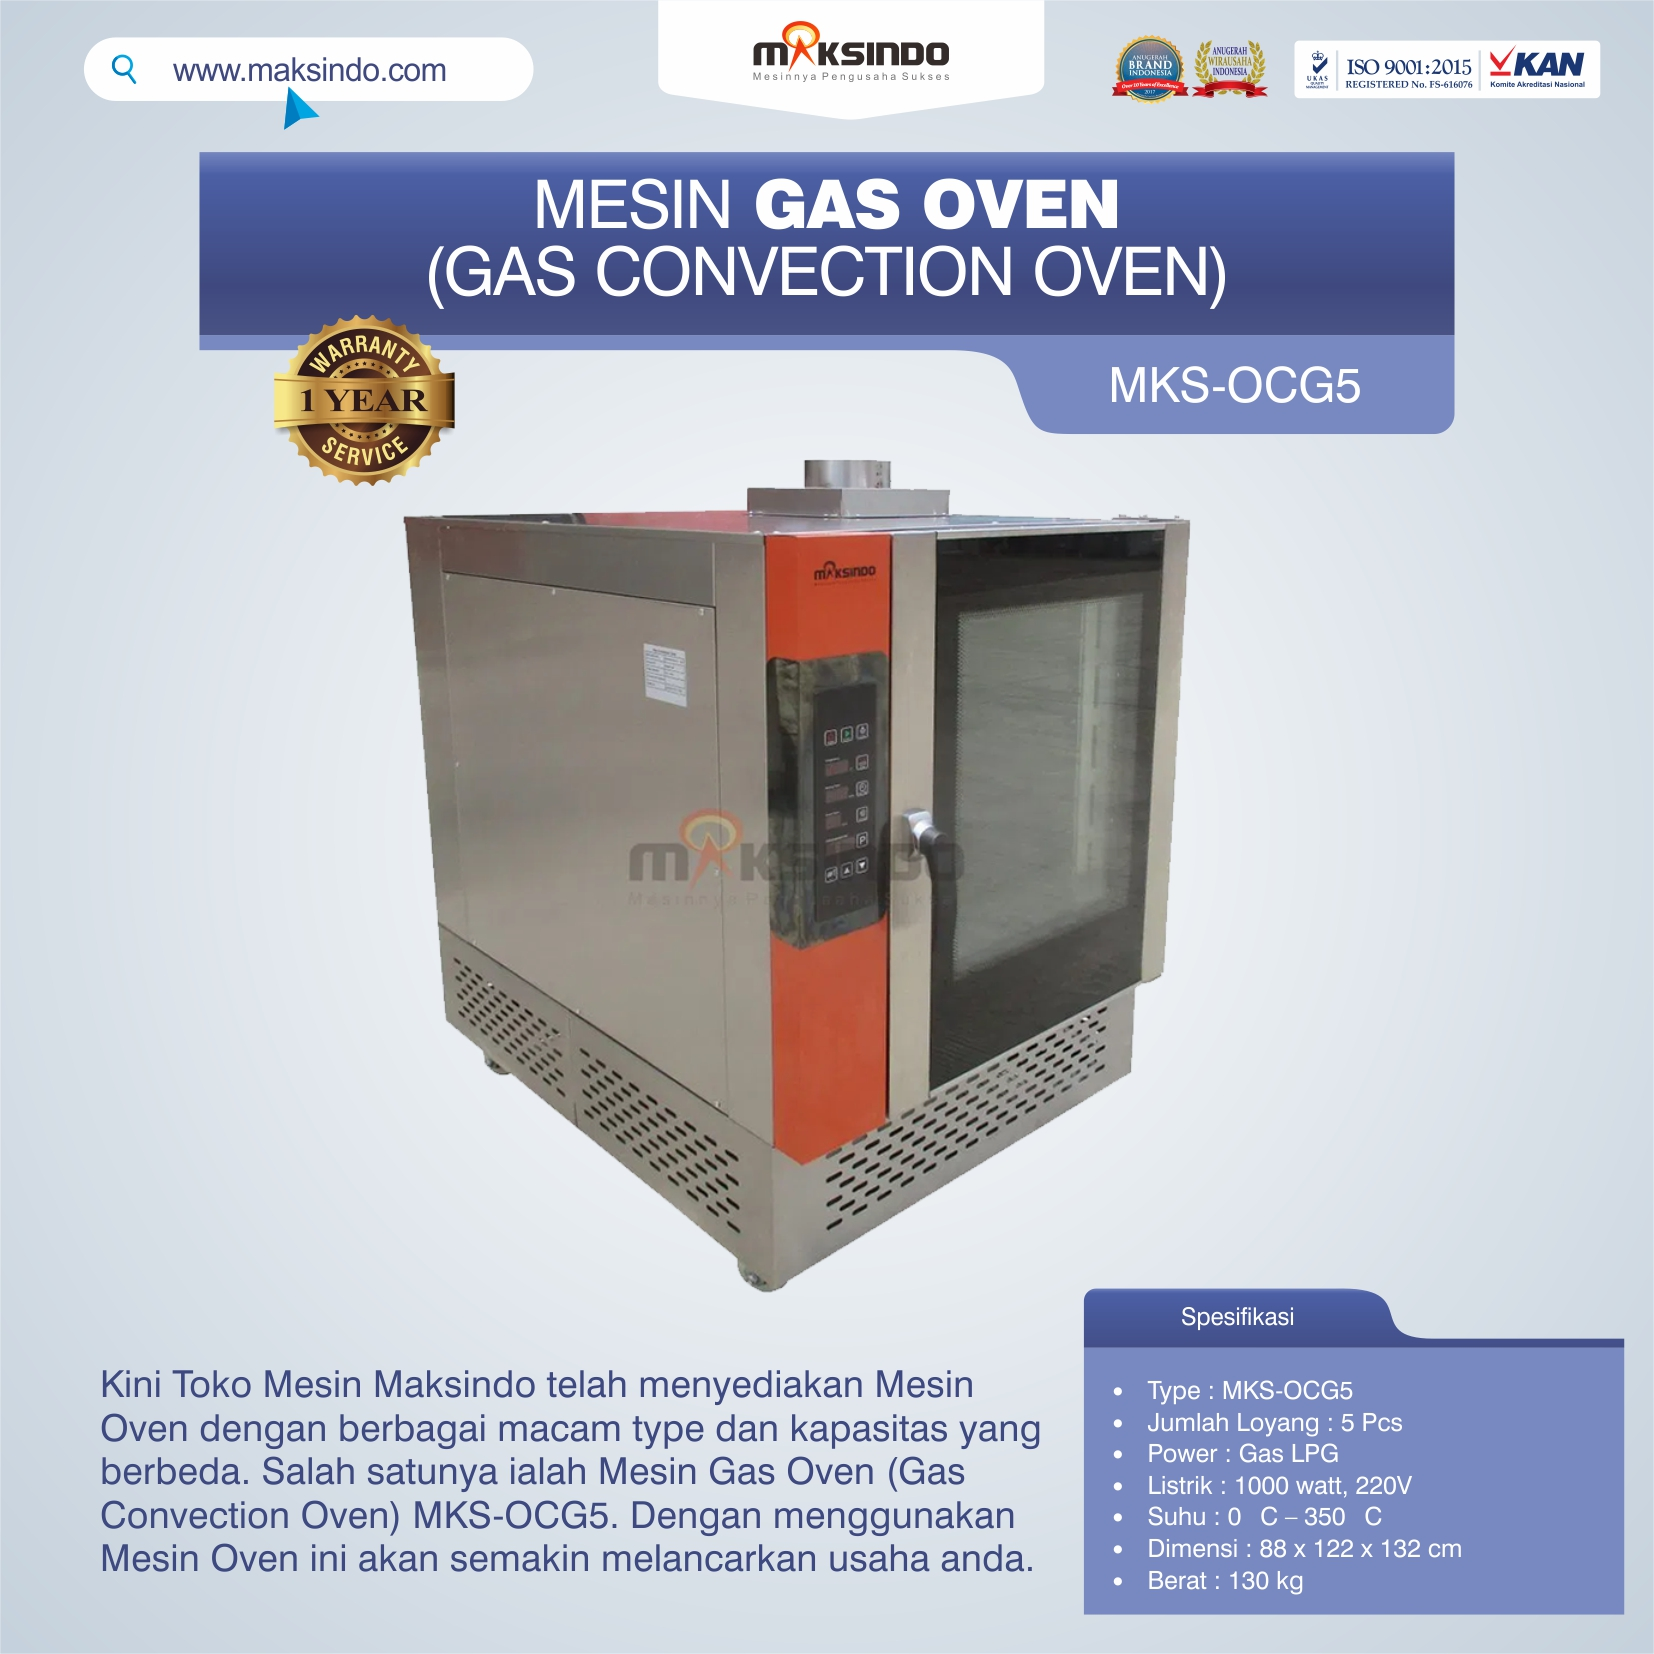 Mesin Gas Oven (Gas Convection Oven) MKS-OCG5